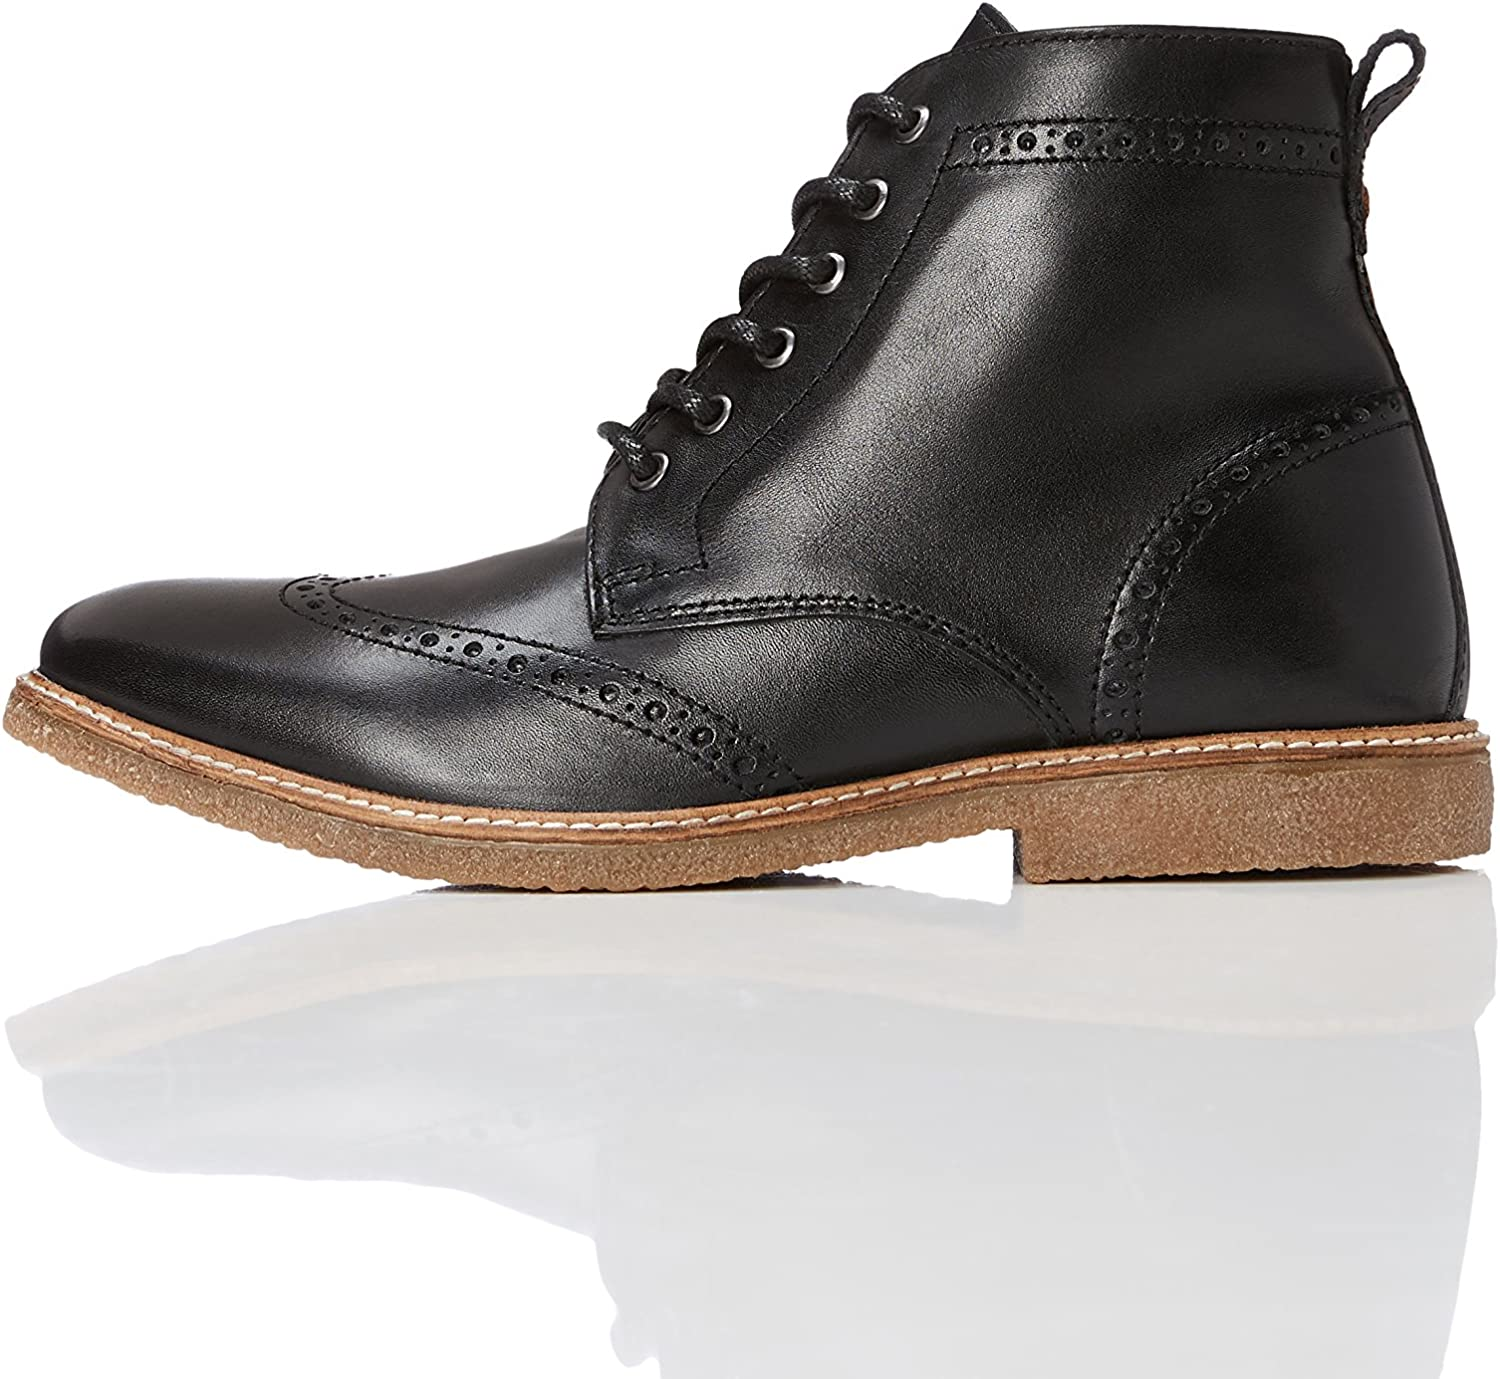 FIND Men's Leather Boots in Brogue Design with Crepe Sole